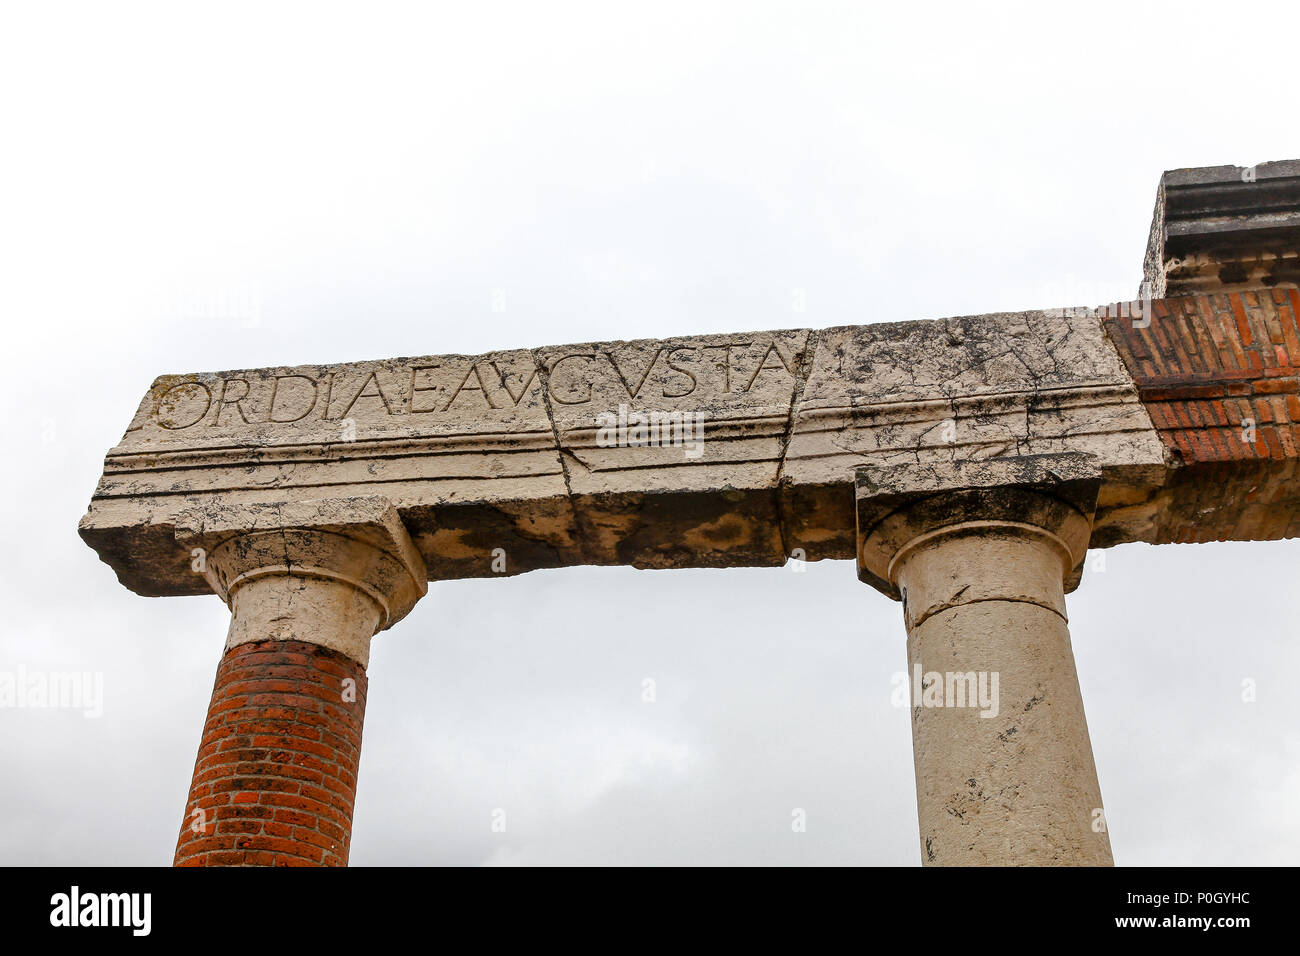 An inscribed stone column at the Pompeii Archaeological site, Pompeii, Campania, Italy, - Stock Image